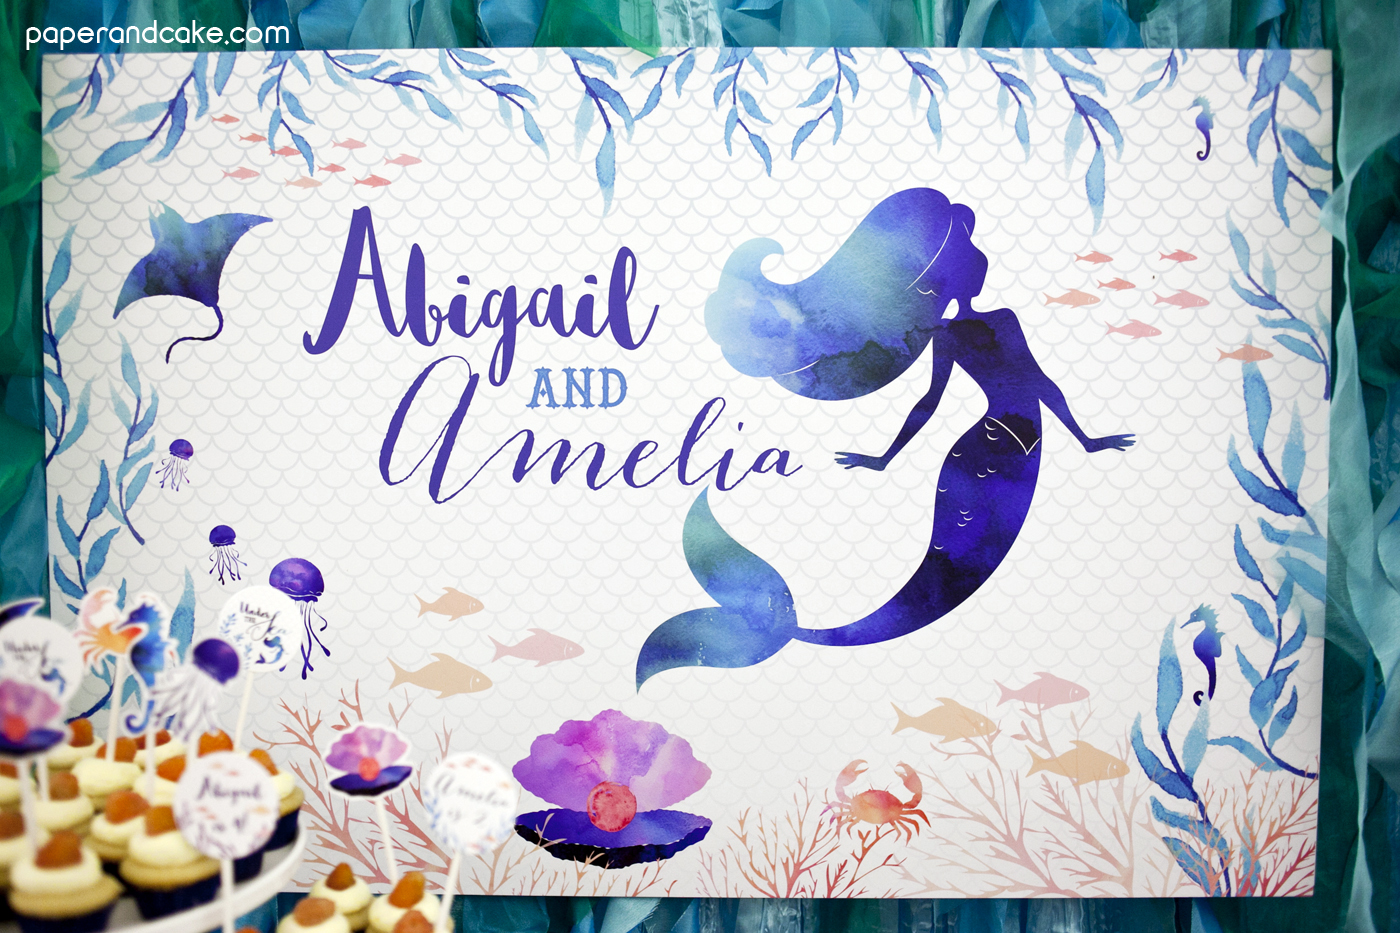 Mermaid Under The Sea Birthday Backdrop Banner Paper And